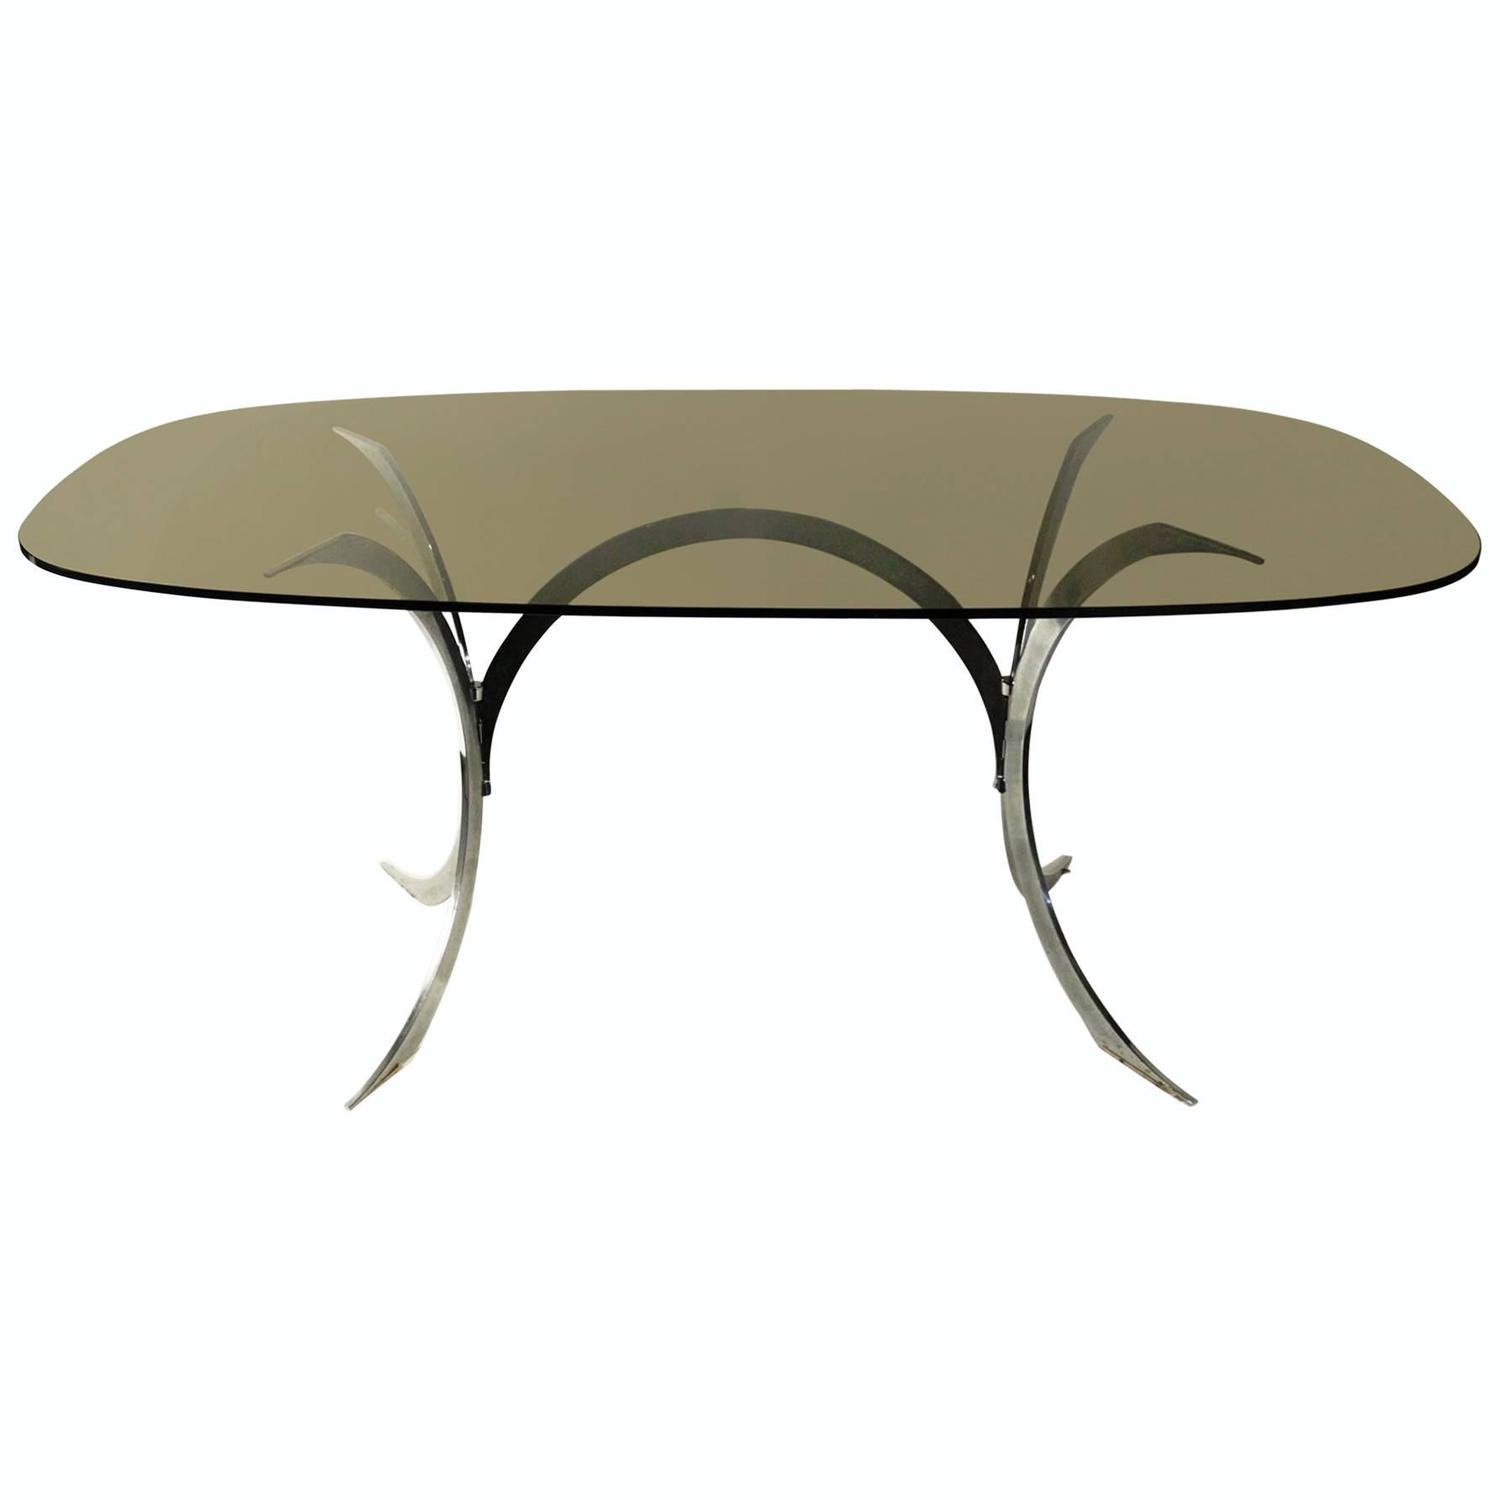 1970s Oval Dining Room Table Chrome Base Smoked Glass Top French For Sale At 1stdibs